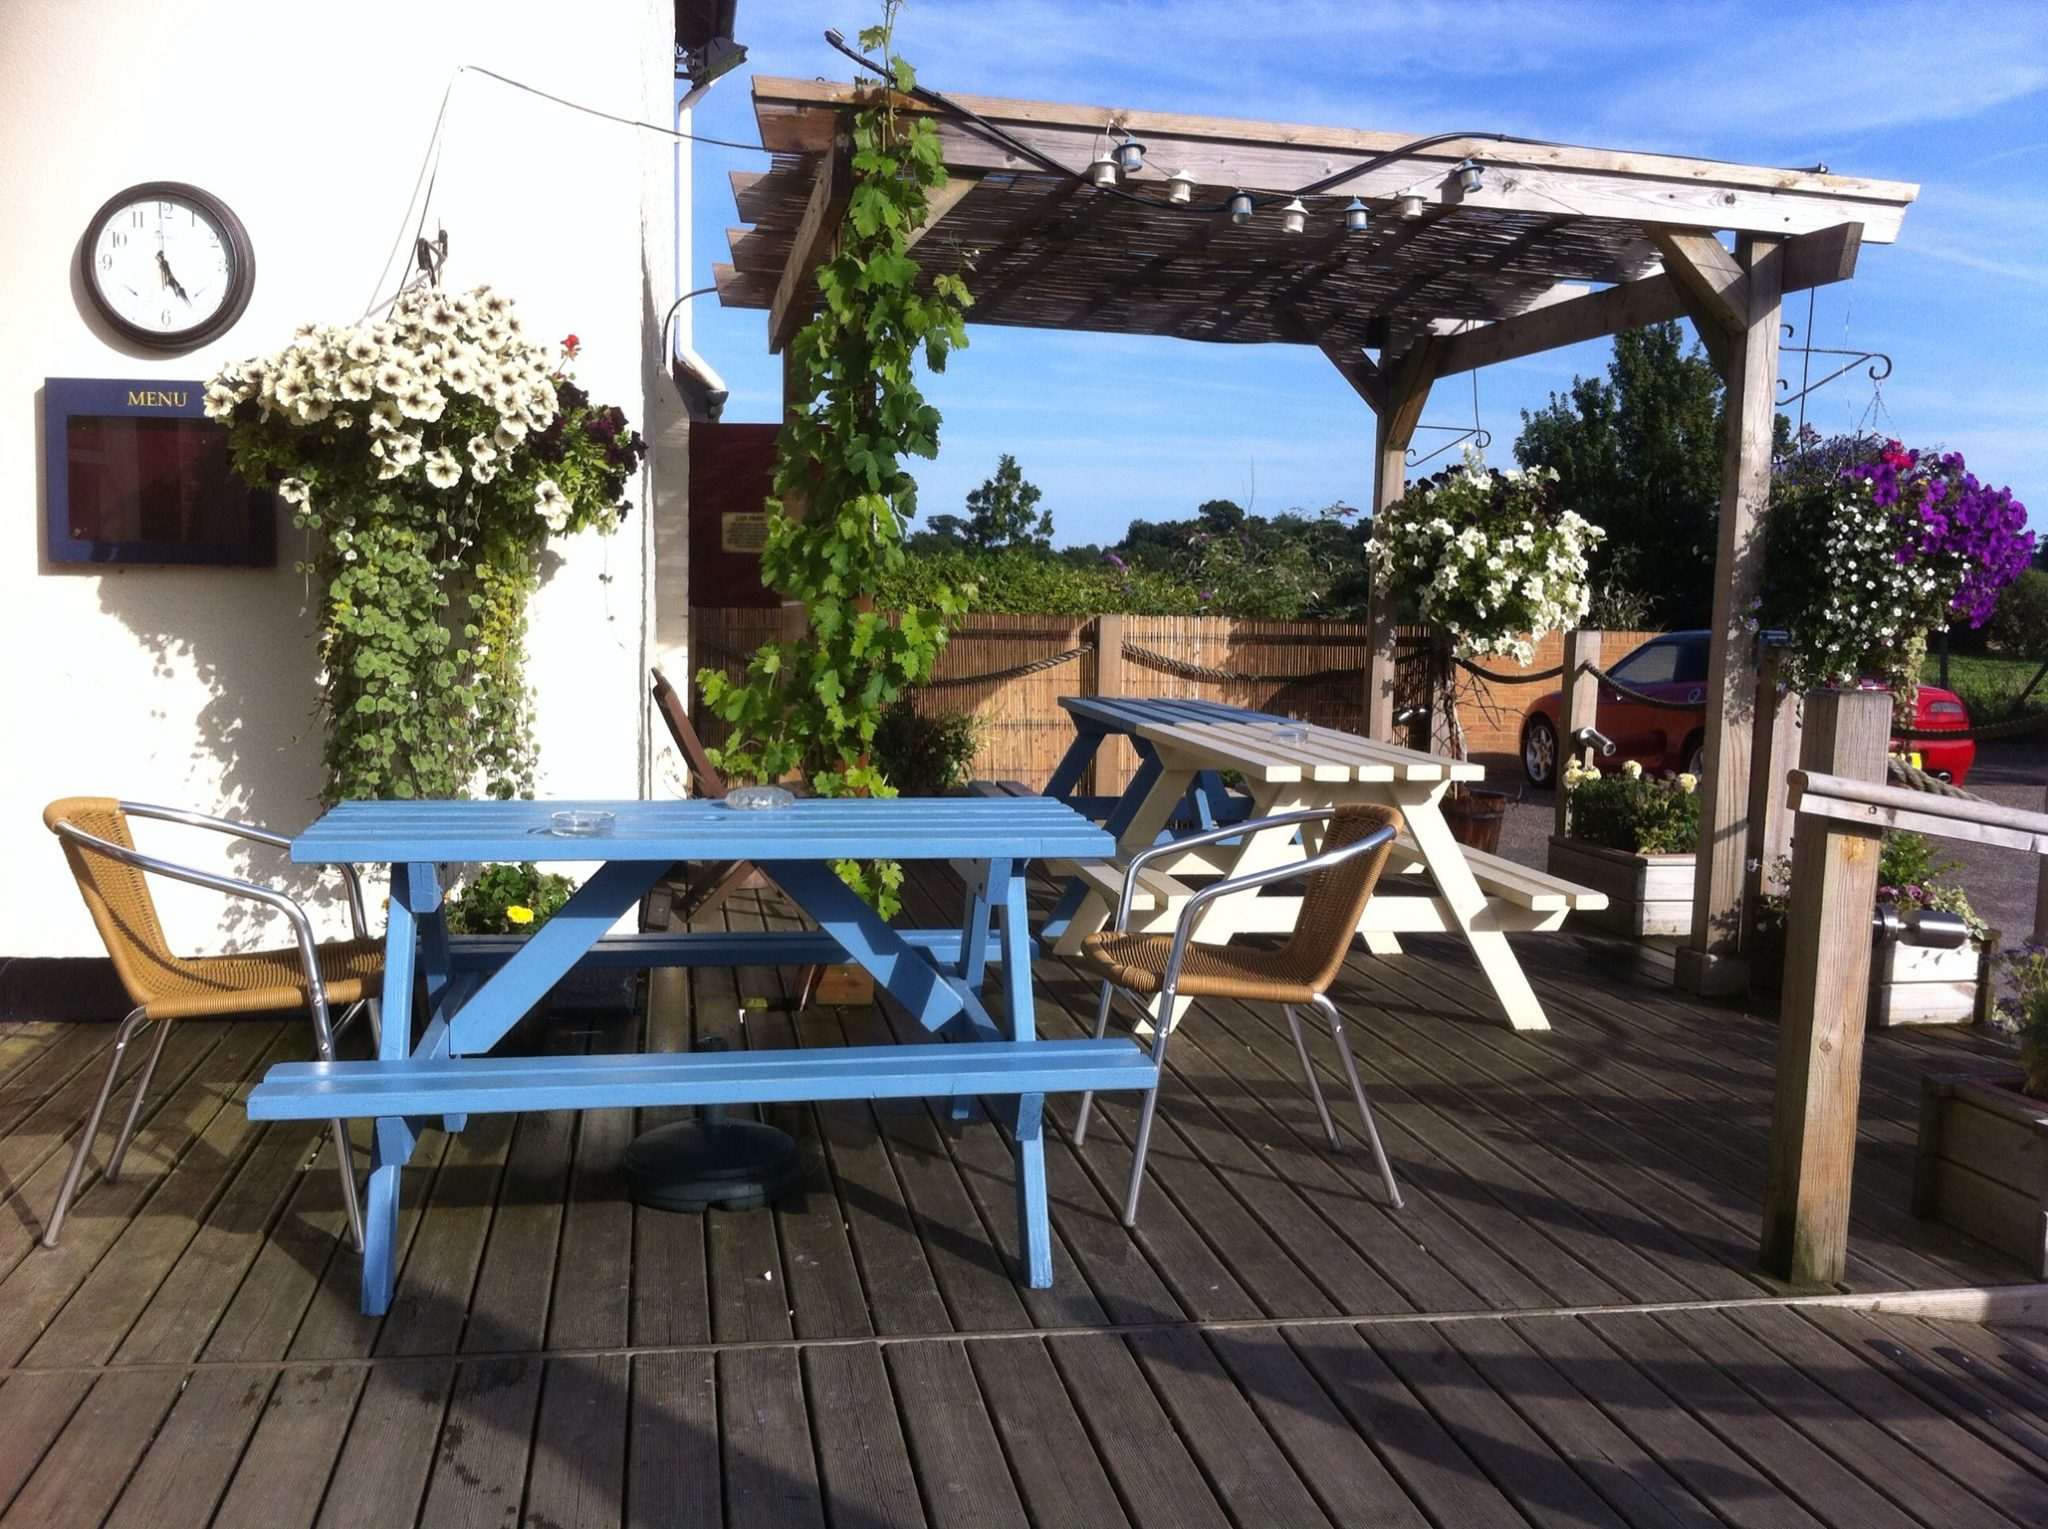 The Westerfield Railway - Decking Area